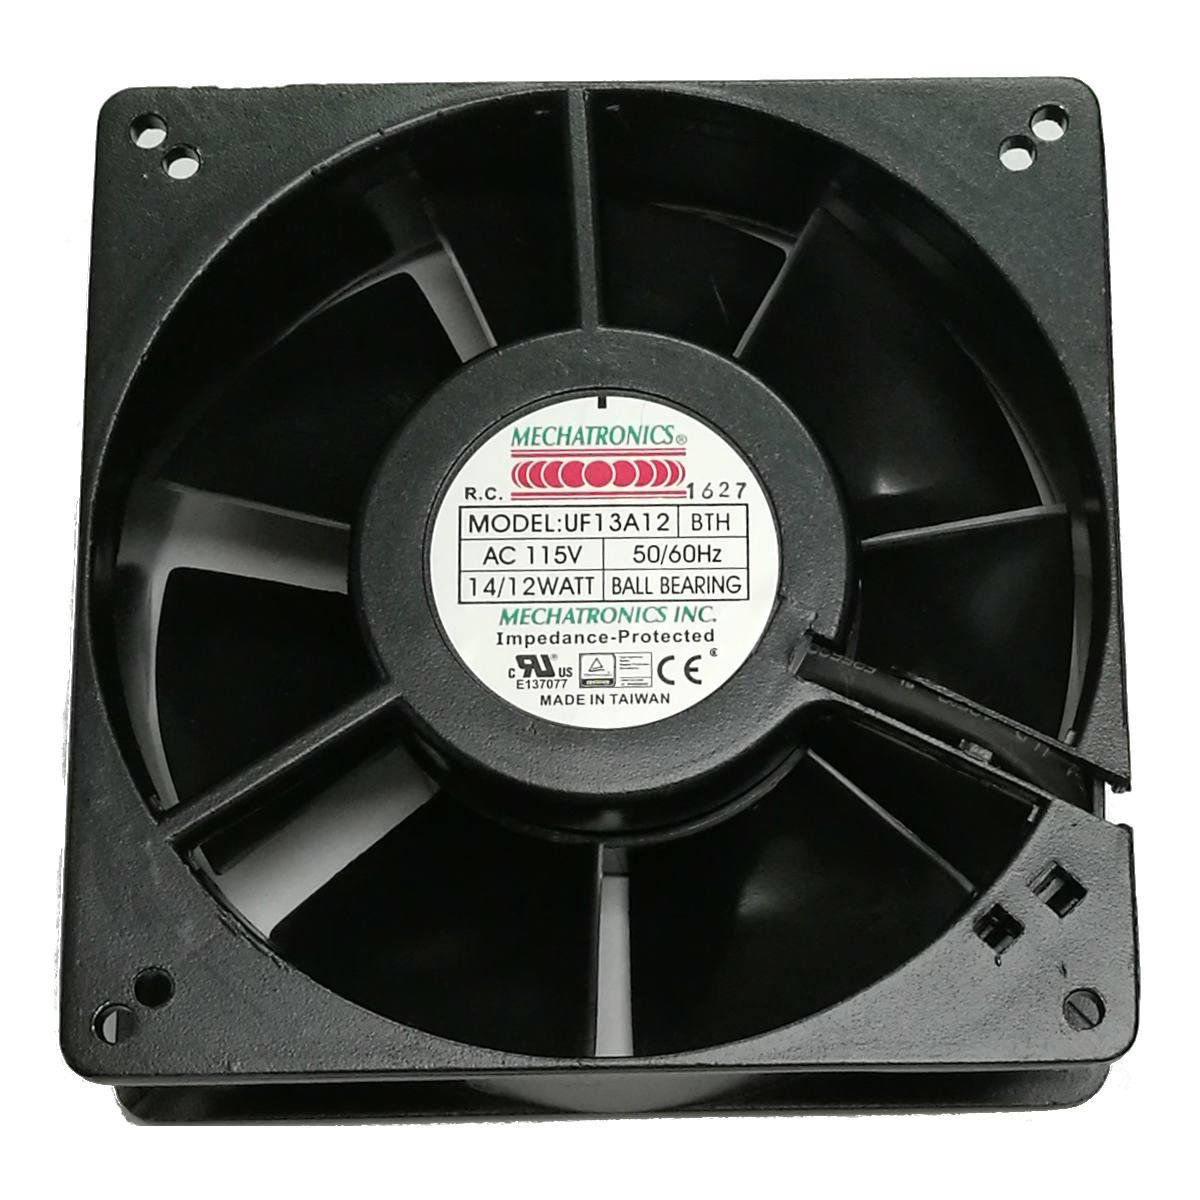 Mechatronics 115V AC Fans 127x38mm, High Speed